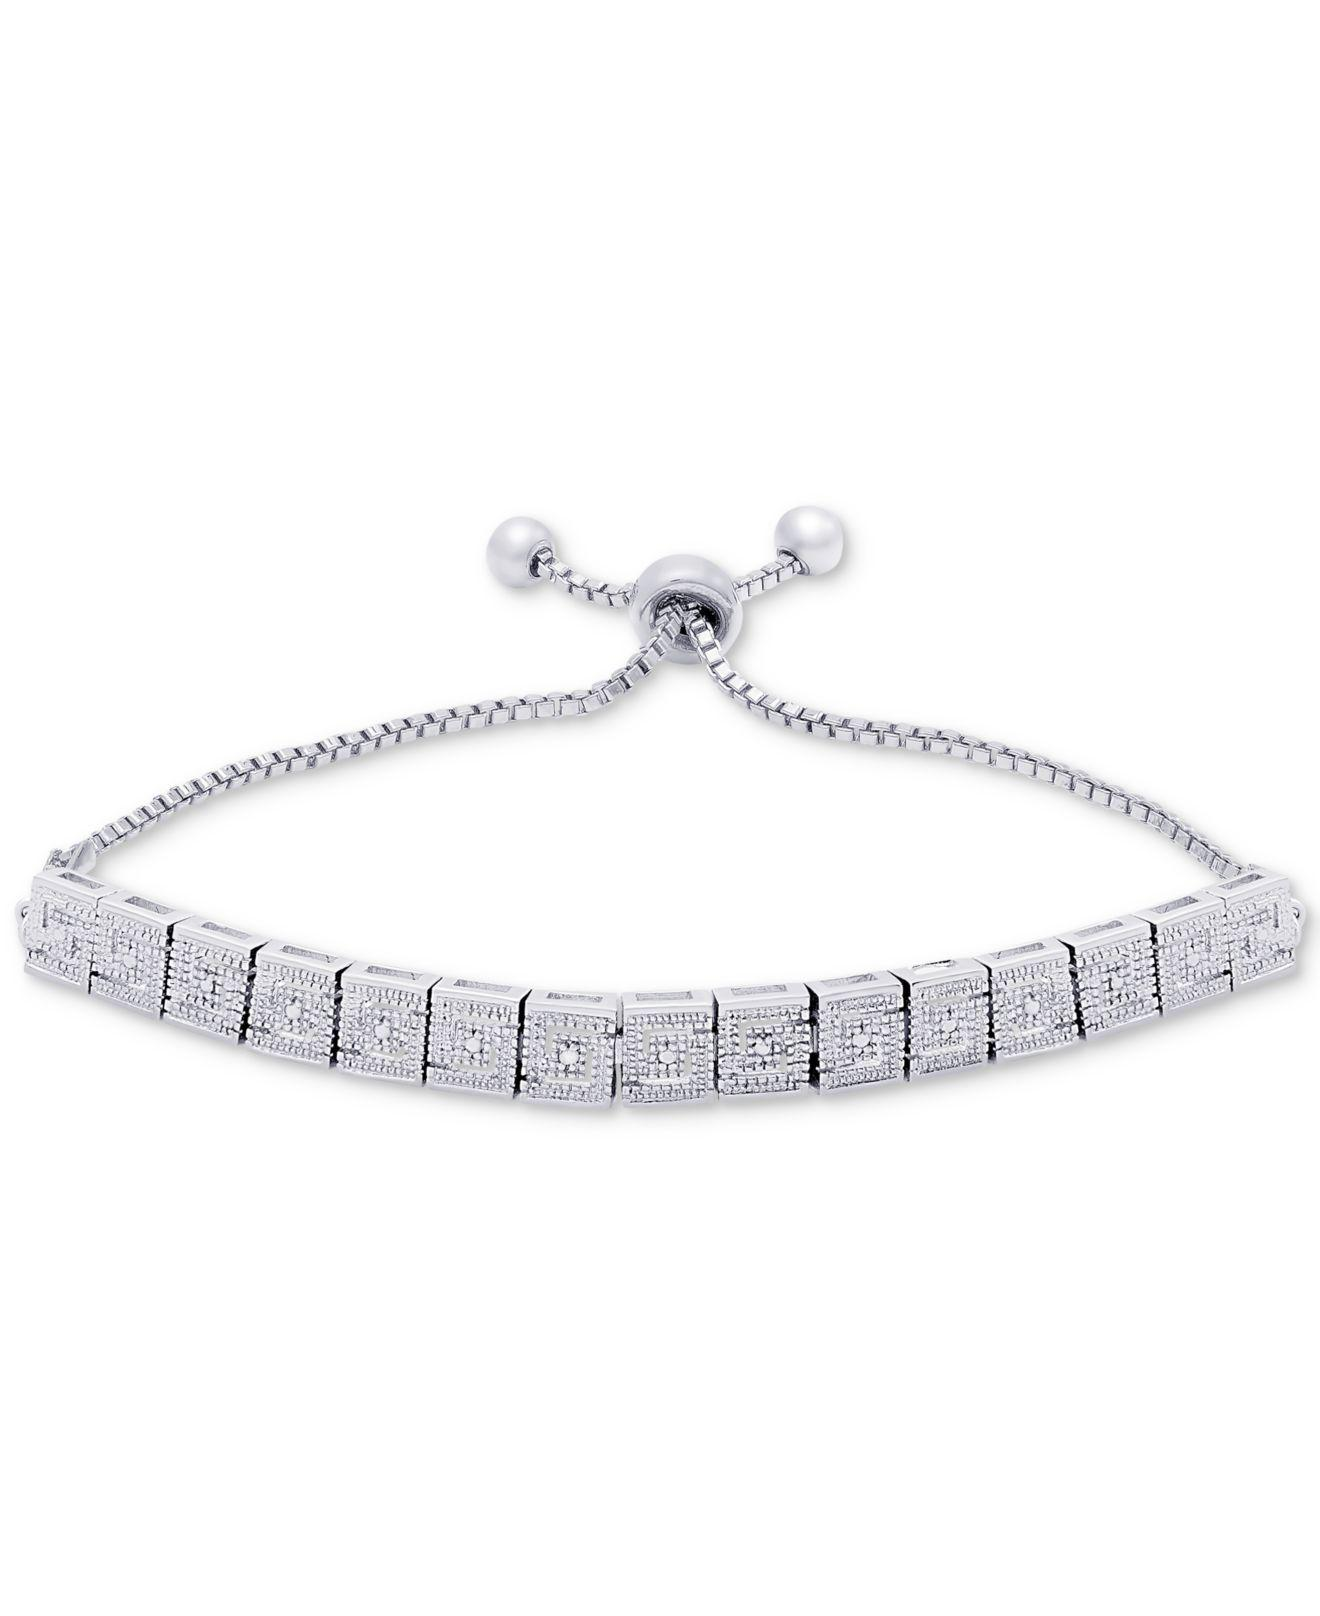 silver plate metallic lyst designer diamond jewelry macy s women bracelet panther accent in macys link